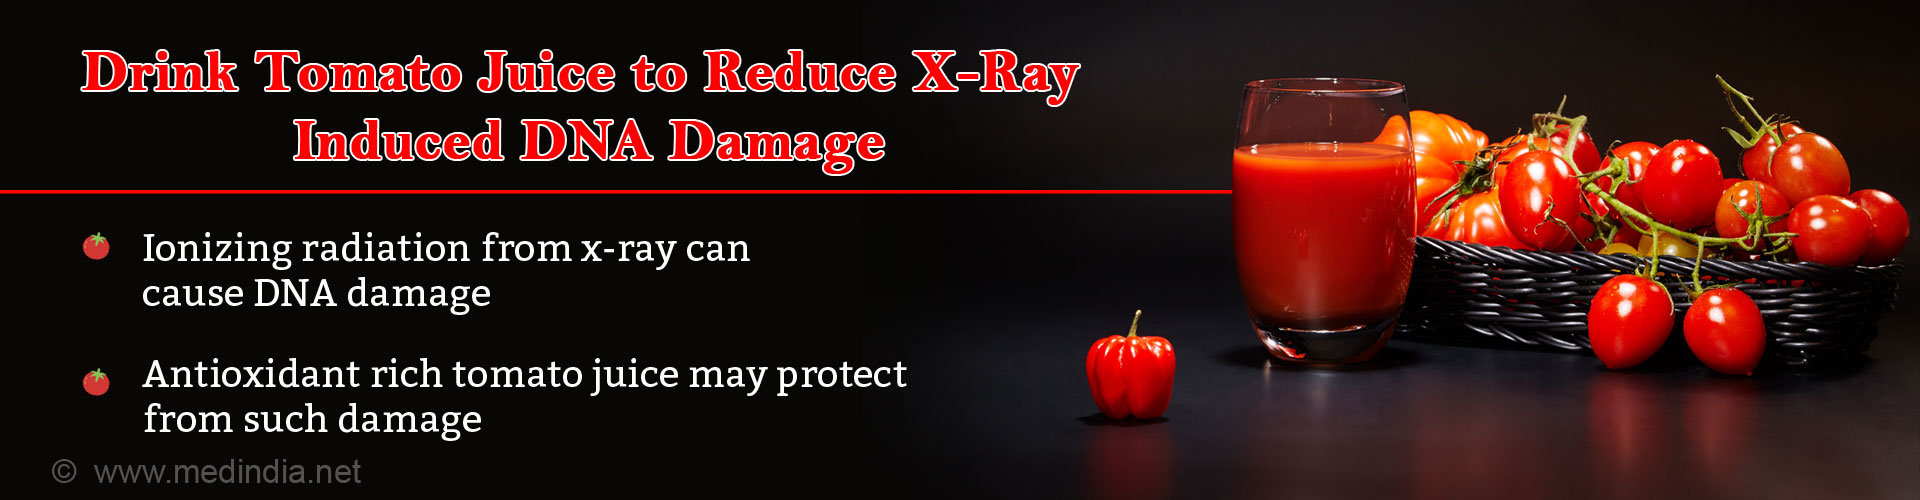 Drink Tomato Juice to Reduce X-ray Induced DNA Damage - Ionizing radiation from x-ray can cause DNA damage - Antioxidant risch tomato juice may protect from such damage